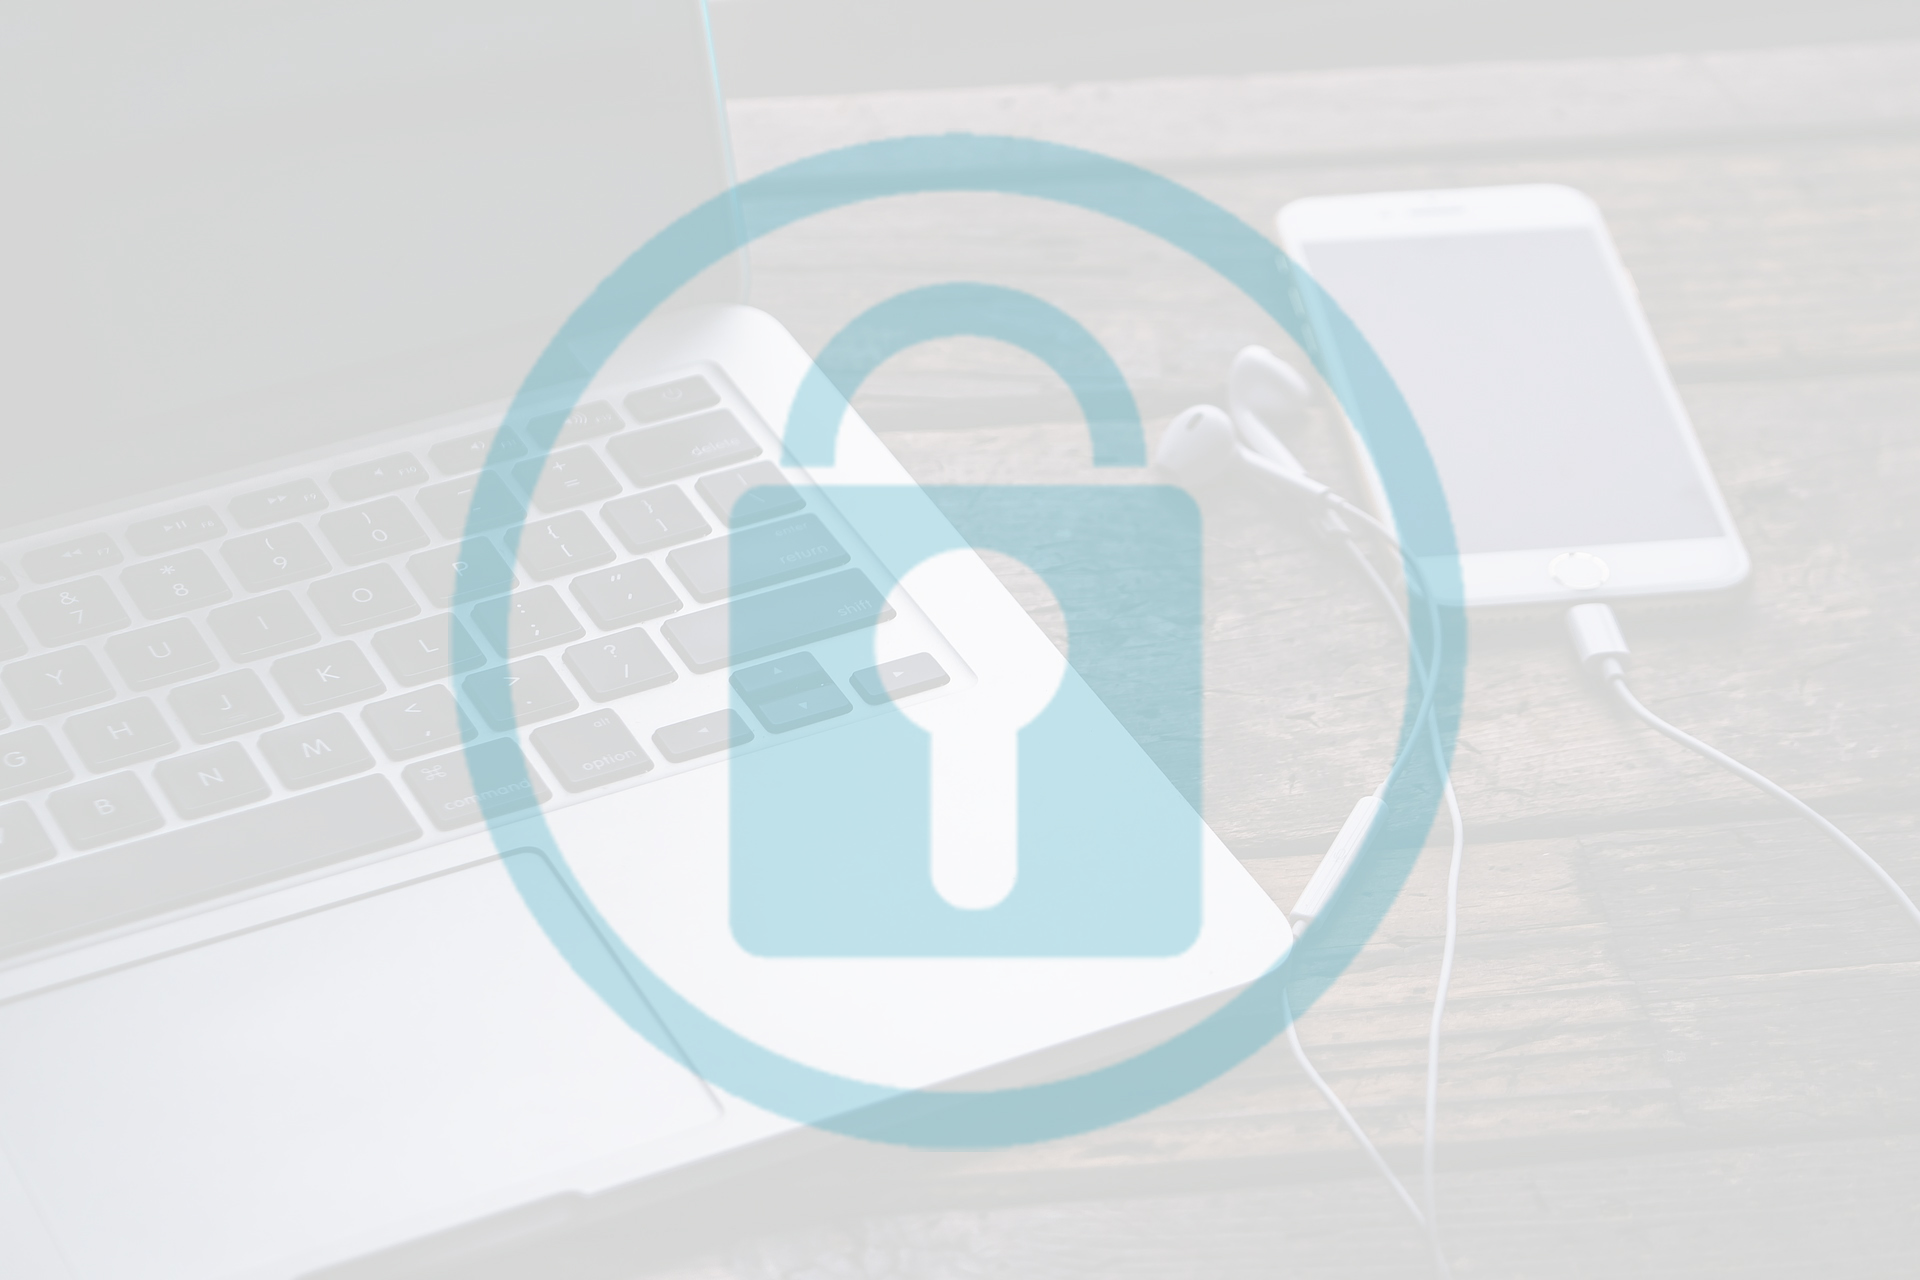 Keeping SharePoint Secure: What Executives Need to Know About SharePoint Security